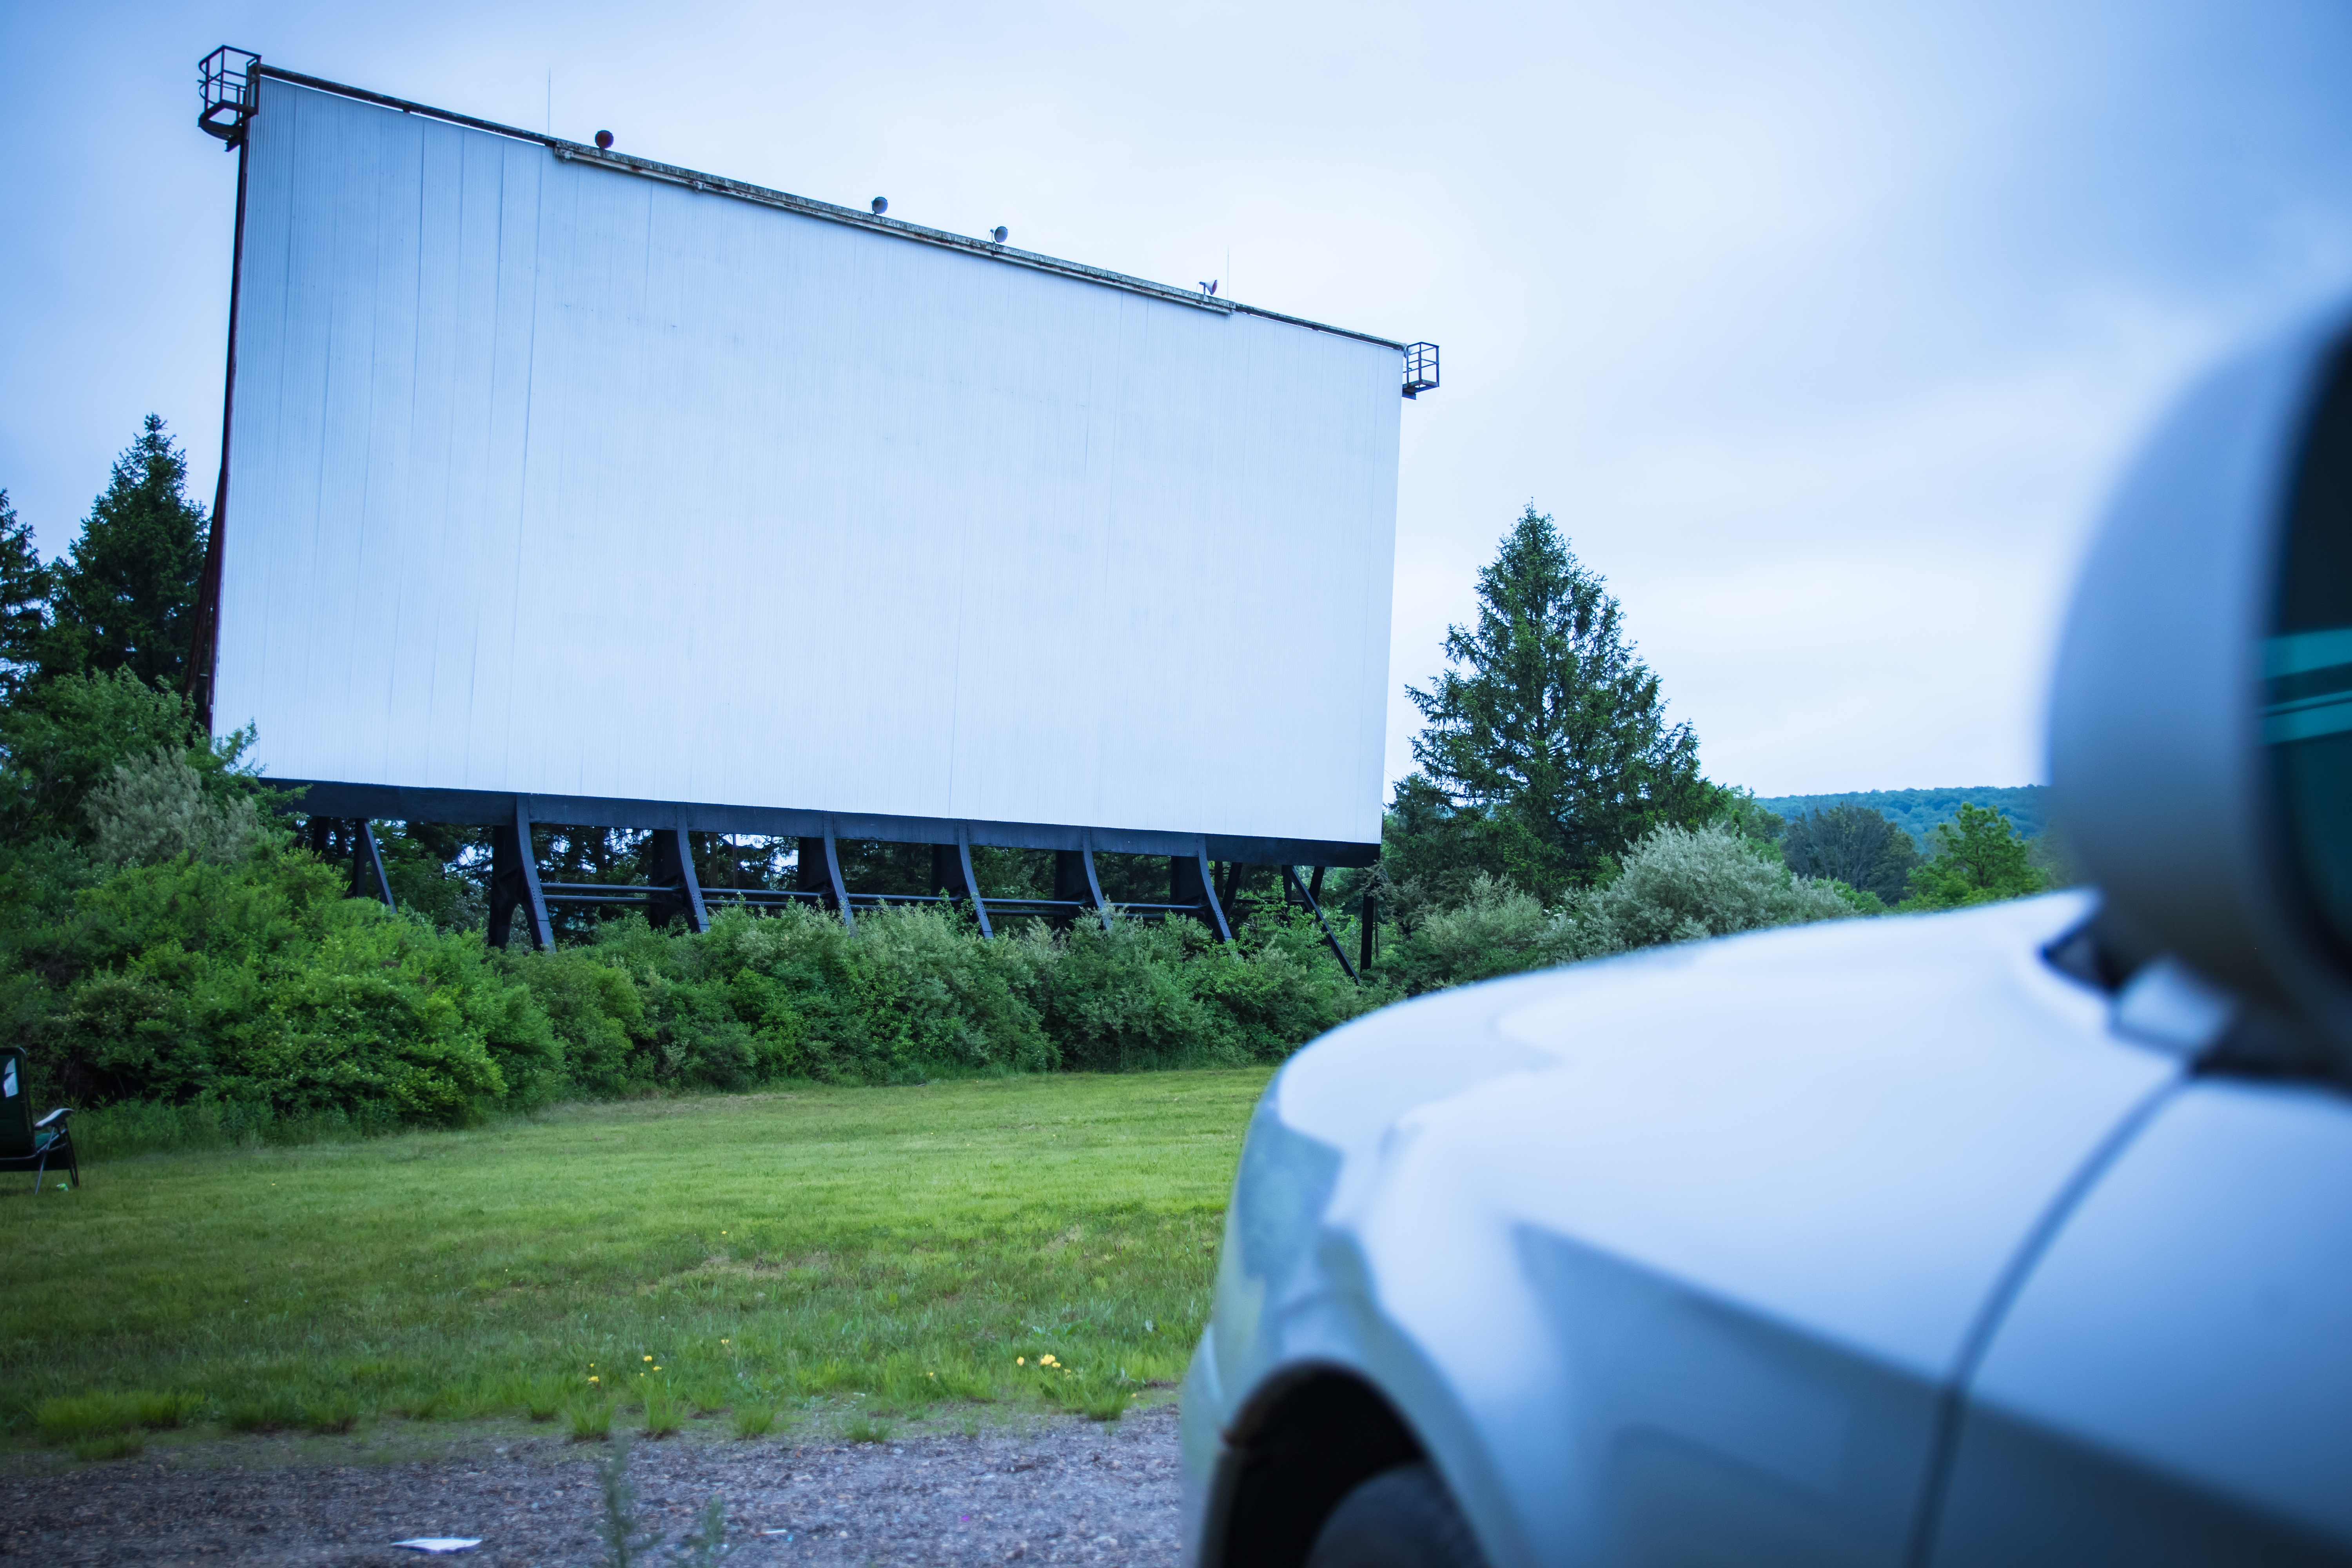 A large white movie screen set up outsides against green trees, and a car is in the right corner facing the screen